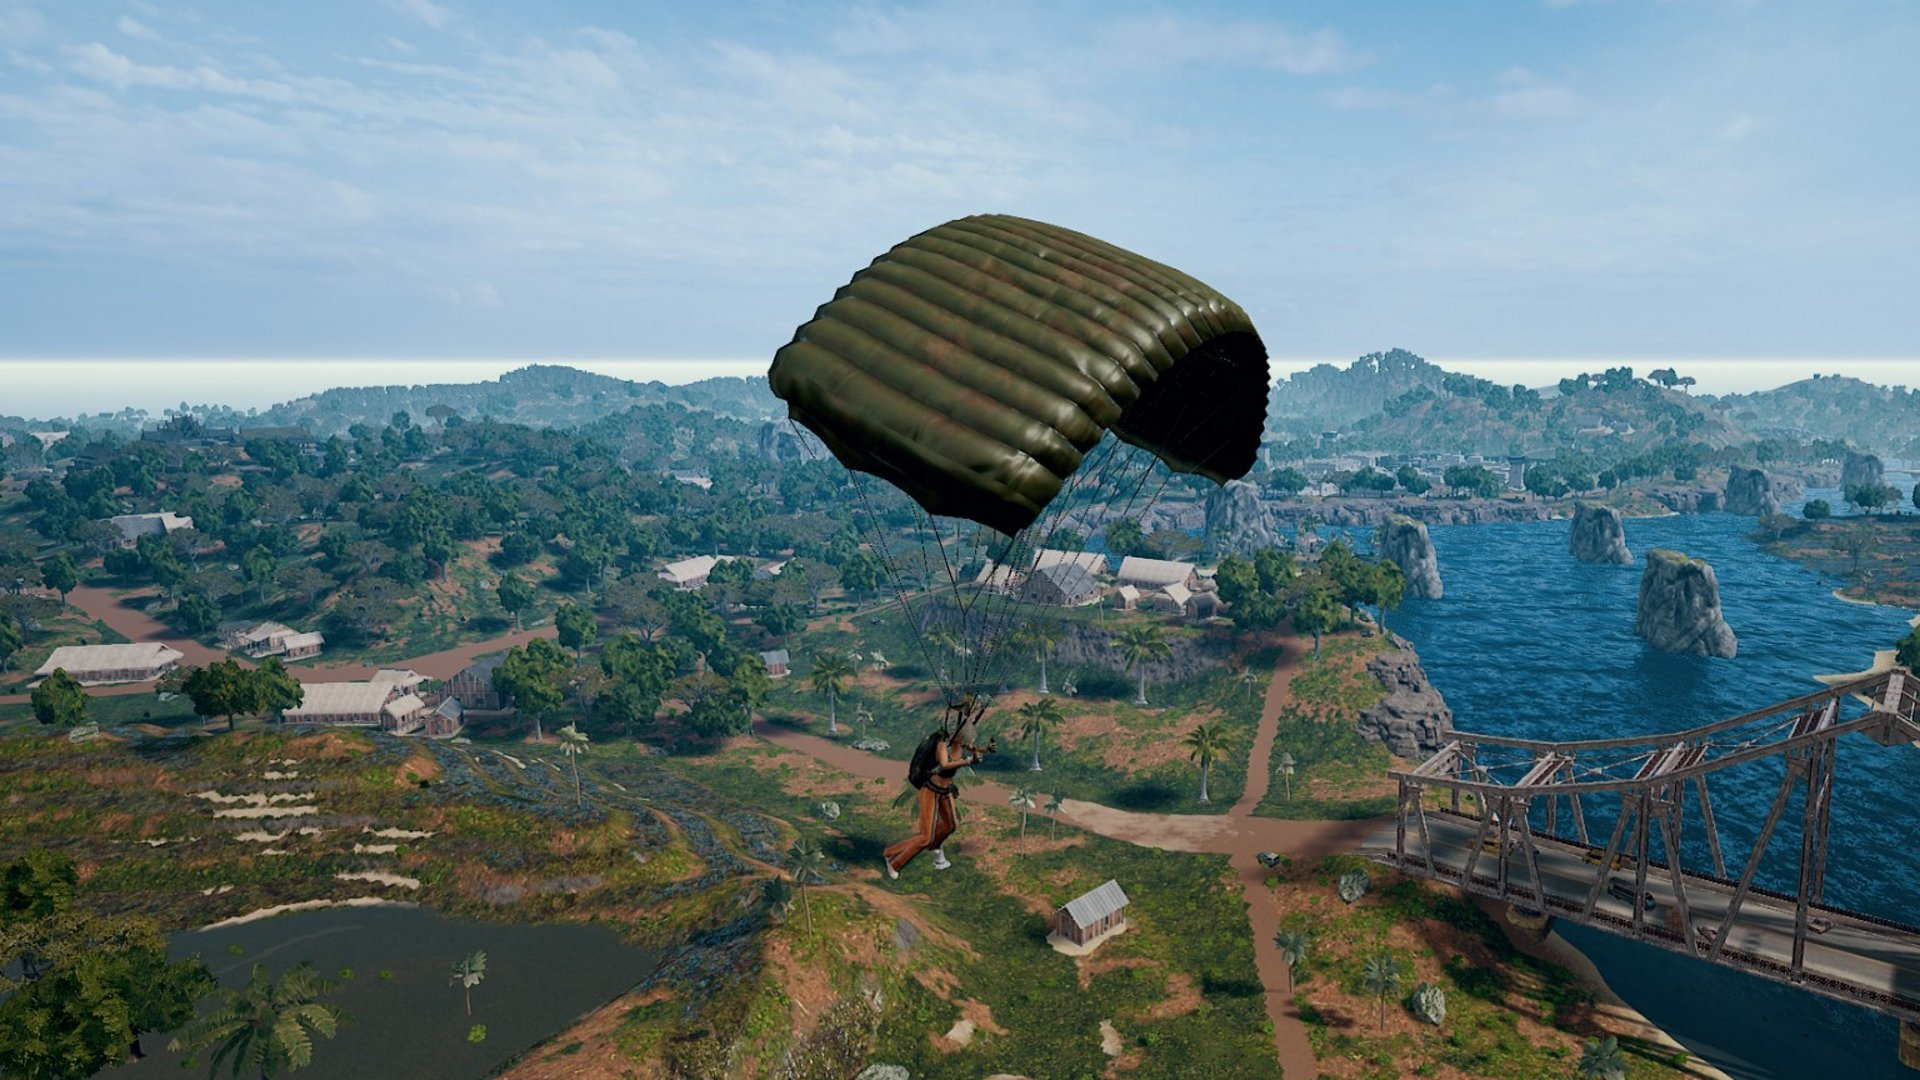 Pubg Test Server Patch Adds Custom Games Spectator Mode: PUBG To Add Spectator Mode, Stop Cars From Flipping Out